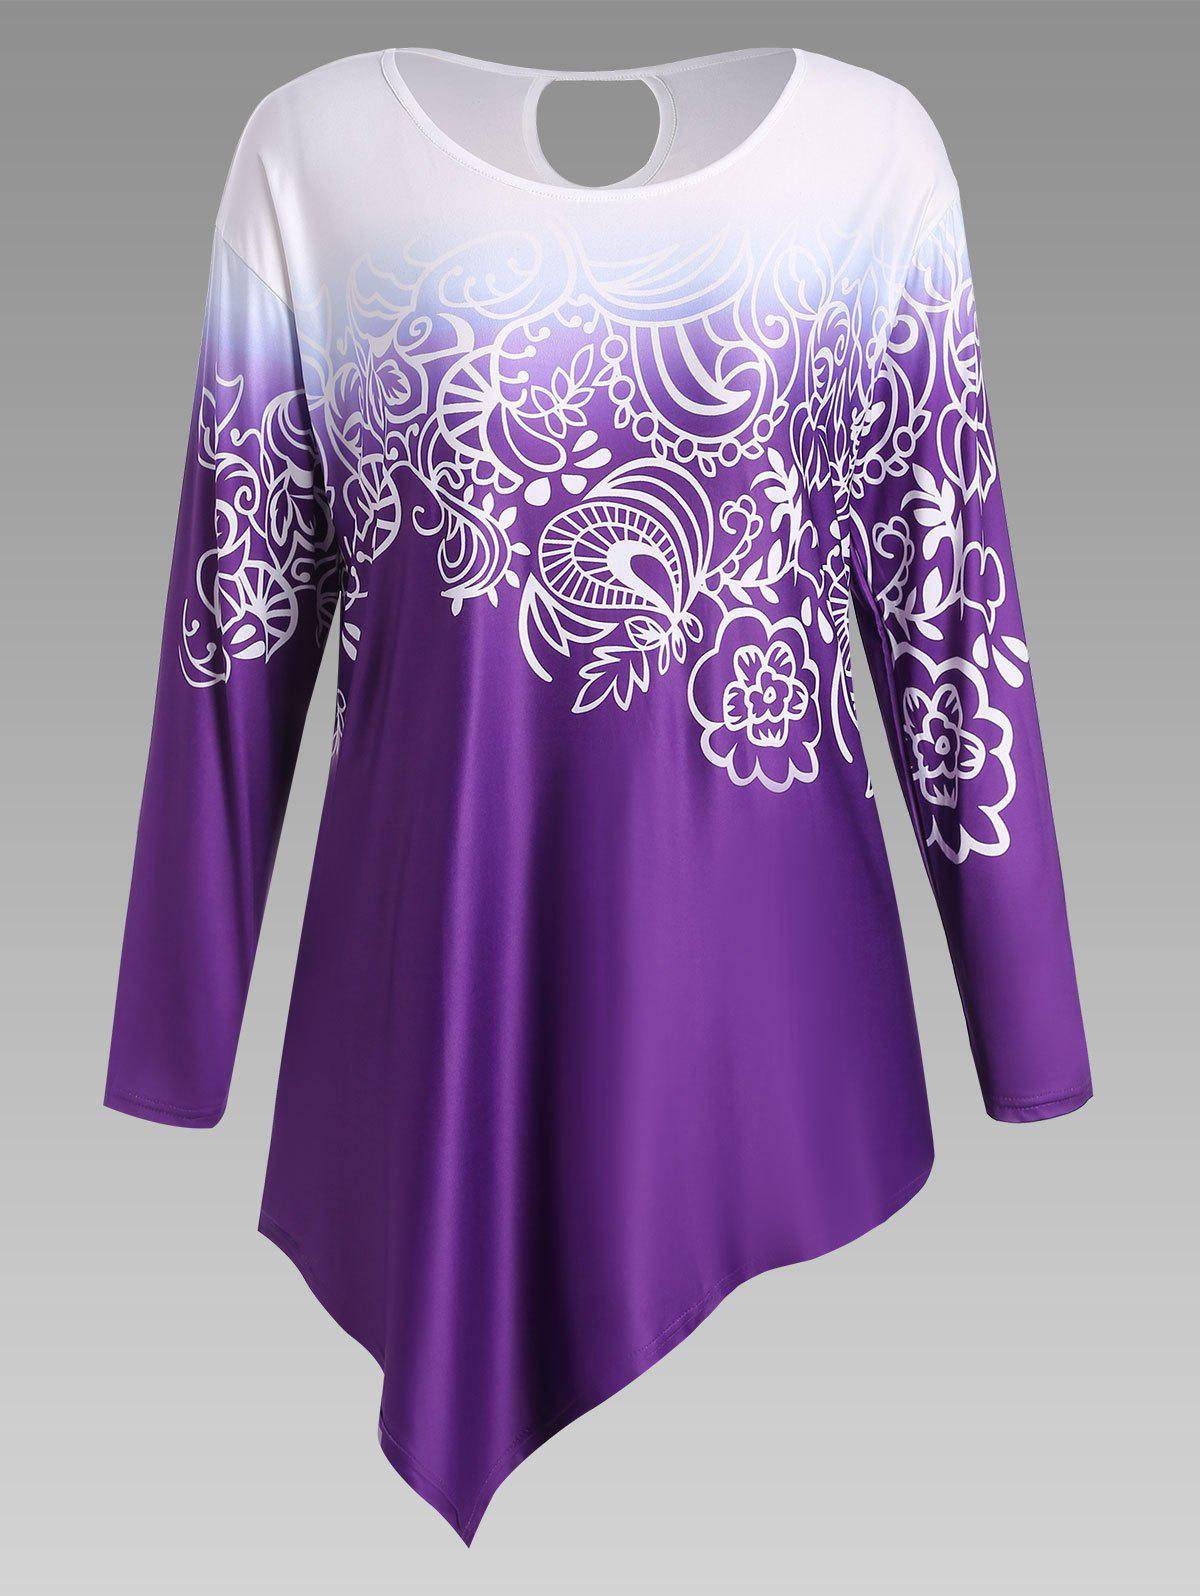 Floral Ombre Long Sleeve Plus Size Asymmetric TopWOMEN<br><br>Size: 3XL; Color: PURPLE; Material: Cotton Blends,Polyester; Shirt Length: Long; Sleeve Length: Full; Collar: Scoop Neck; Style: Fashion; Season: Fall,Spring; Pattern Type: Floral,Ombre; Weight: 0.2500kg; Package Contents: 1 x Top;